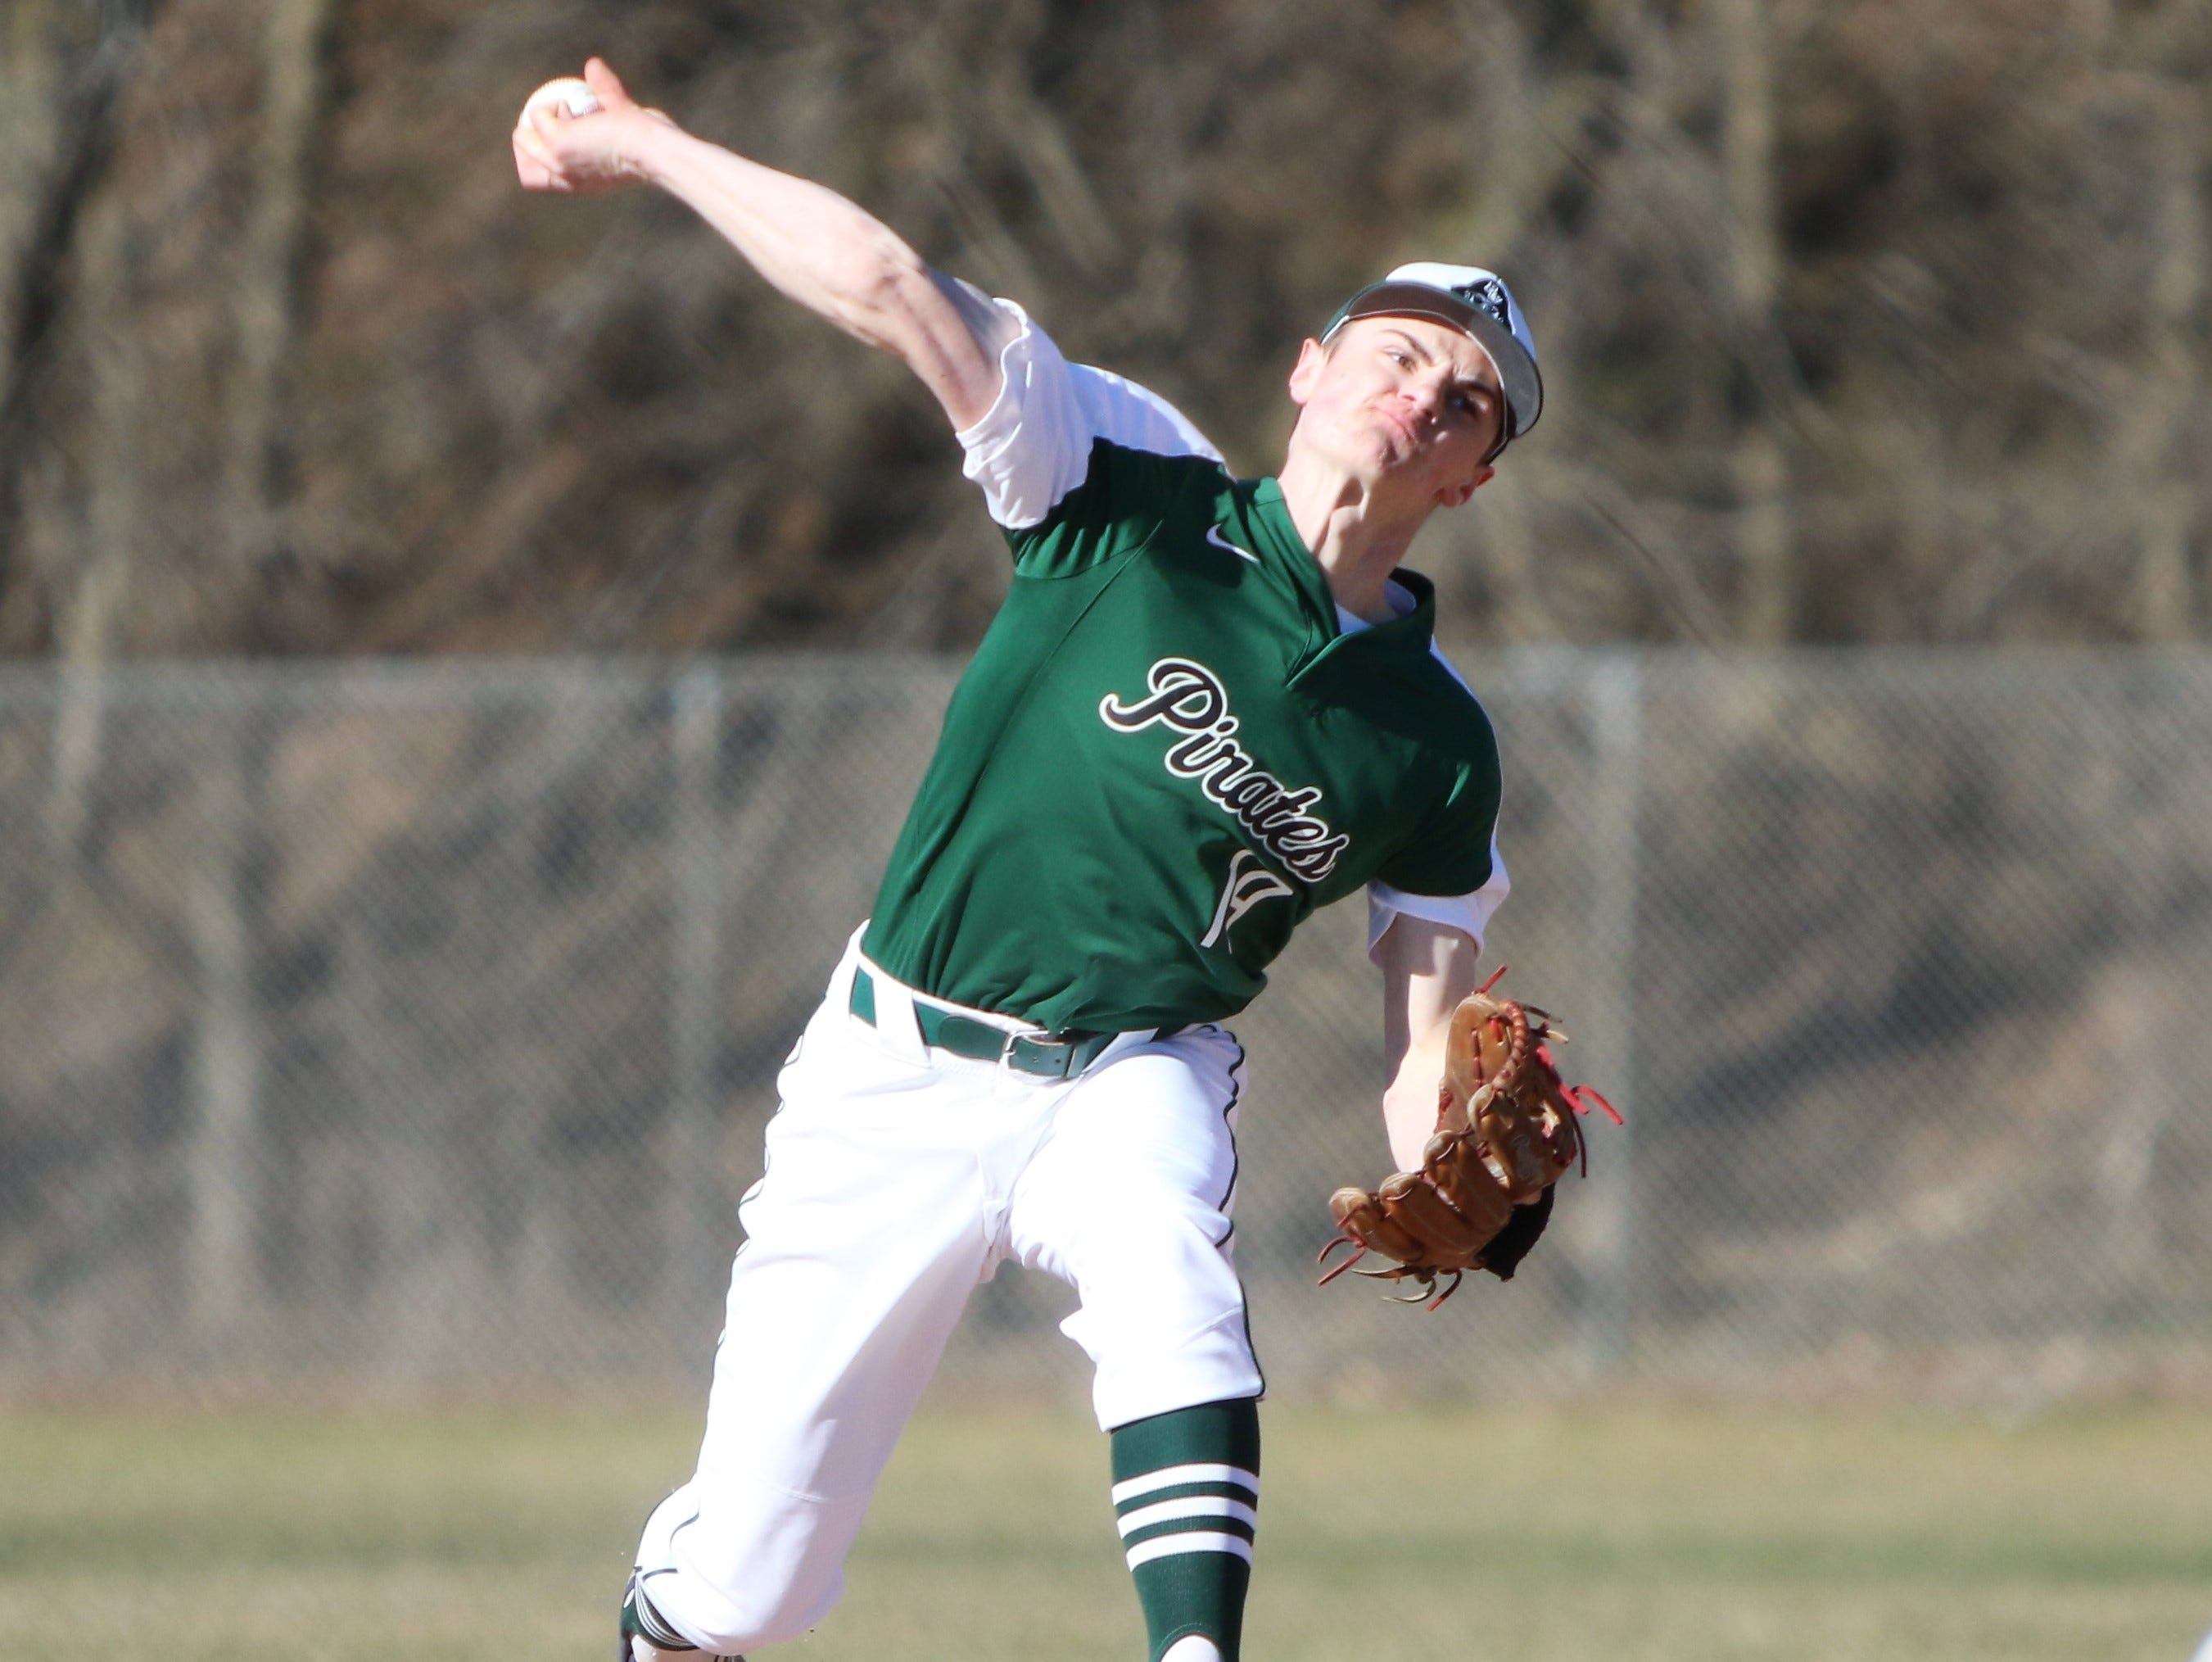 Port Washington pitcher George Klassen delivers a pitch against West Bend East on April 8, 2019